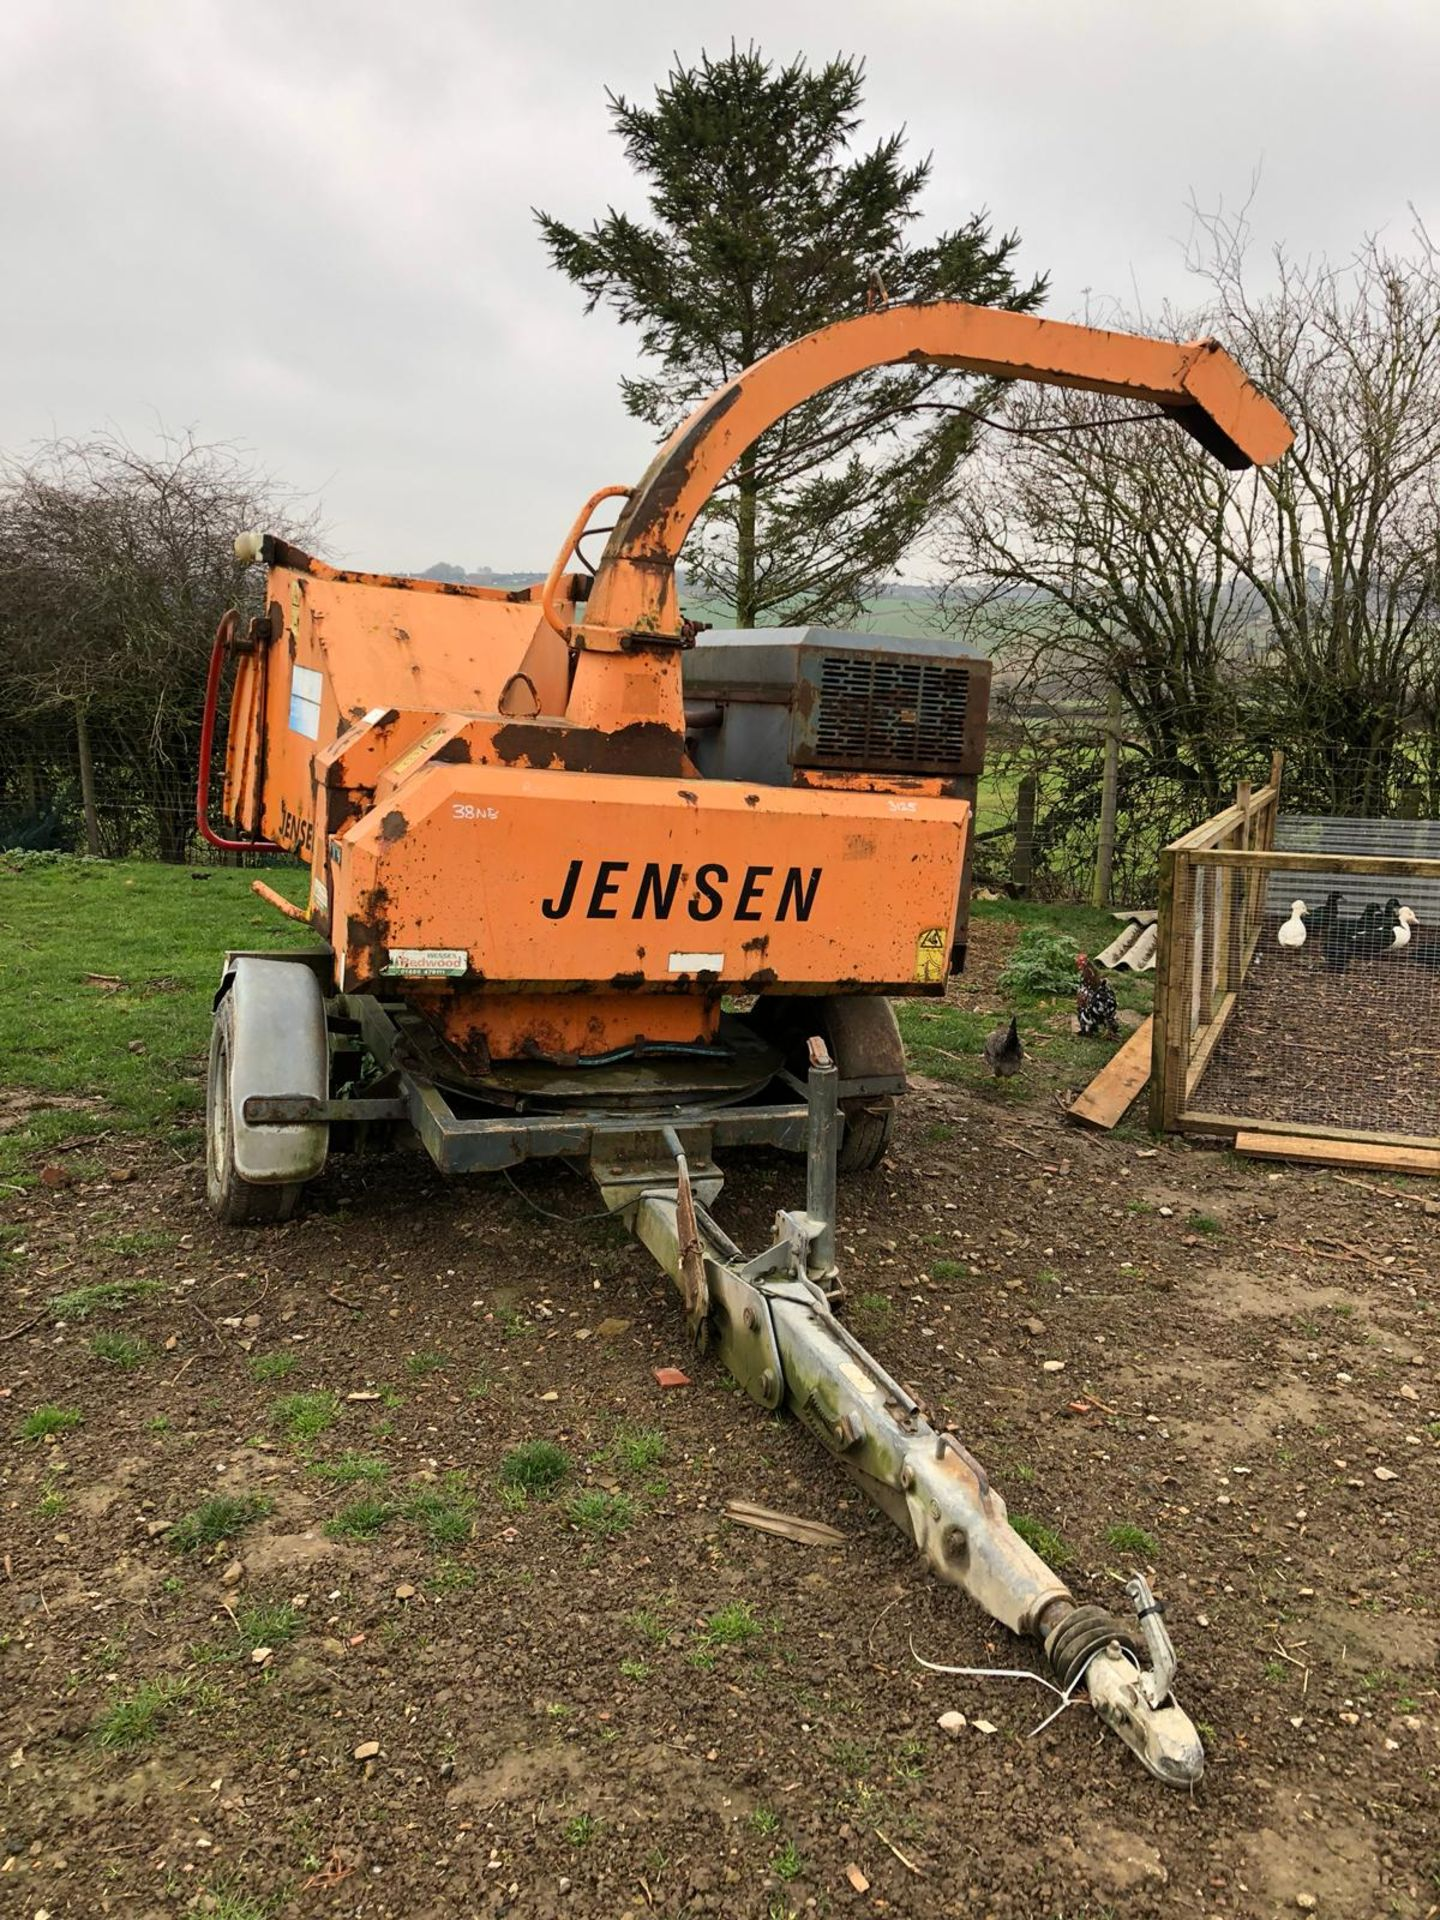 DS -QUALITY 2004 JENSEN DIESEL TURNTABLE CHIPPER, QUALITY TRAILER - Image 2 of 8